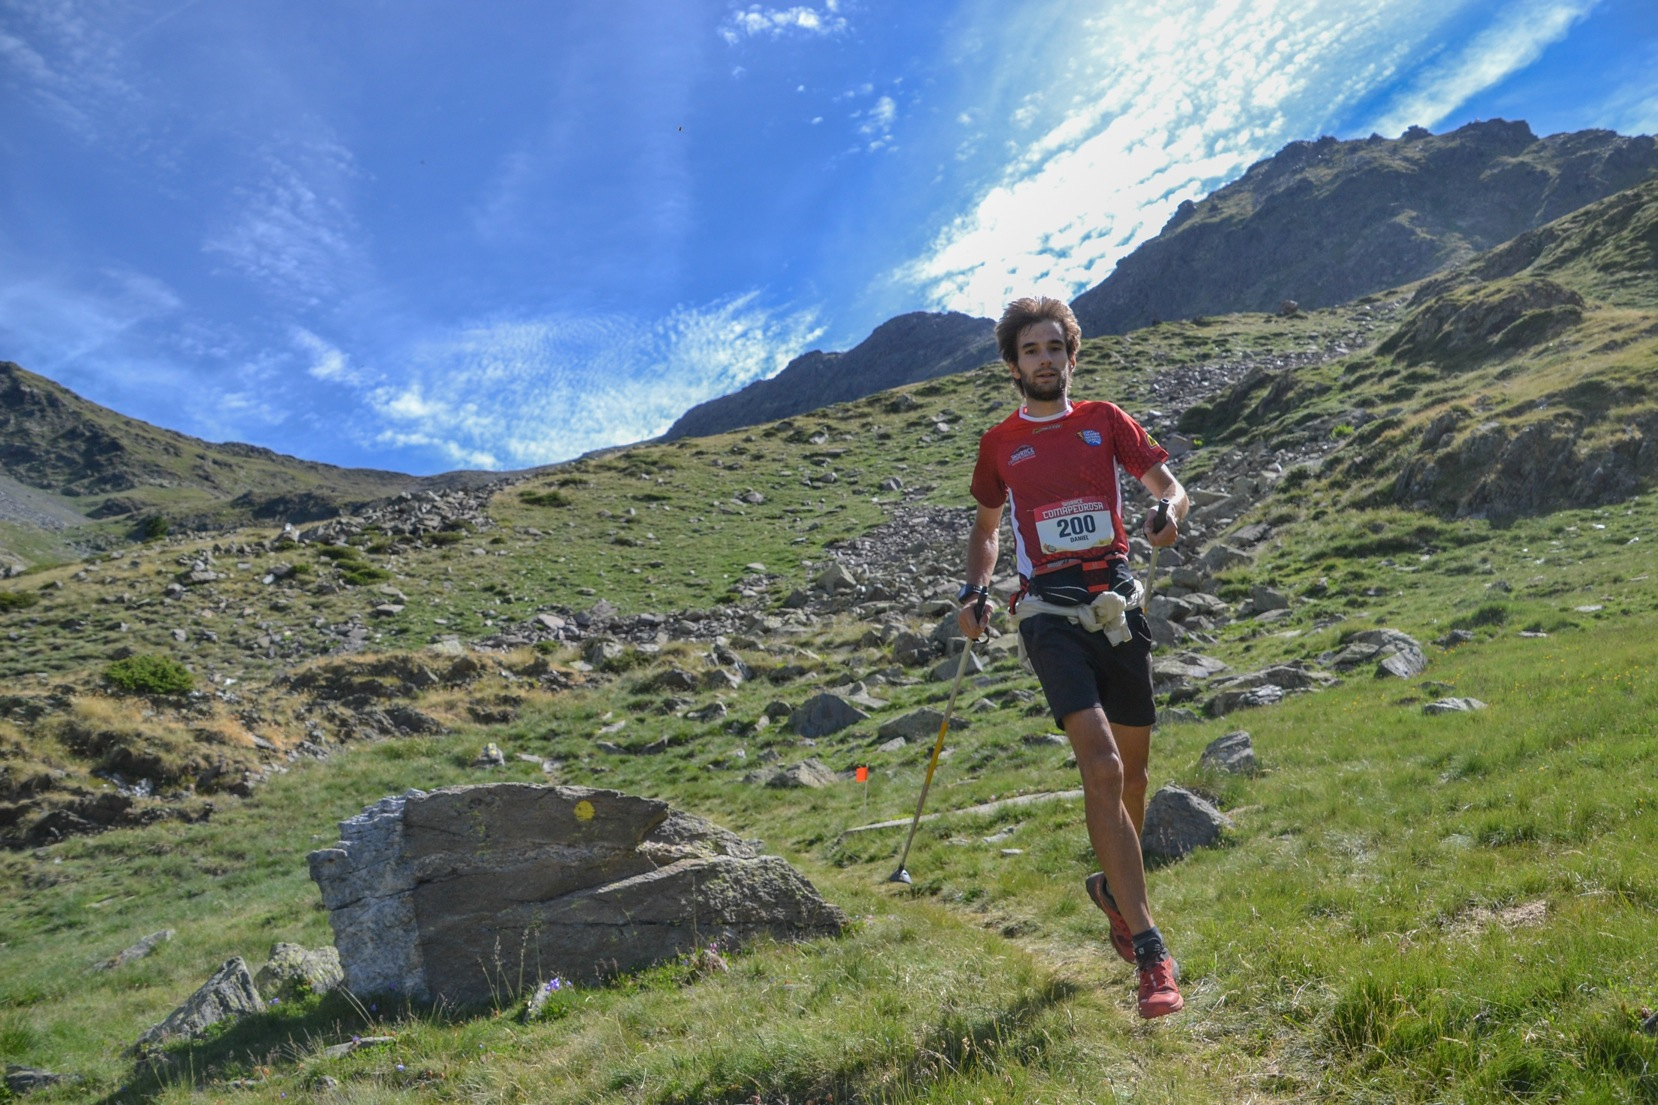 La SkyRace Comapedrosa ser� puntuable para las World Series de la International Skyrunning Federation